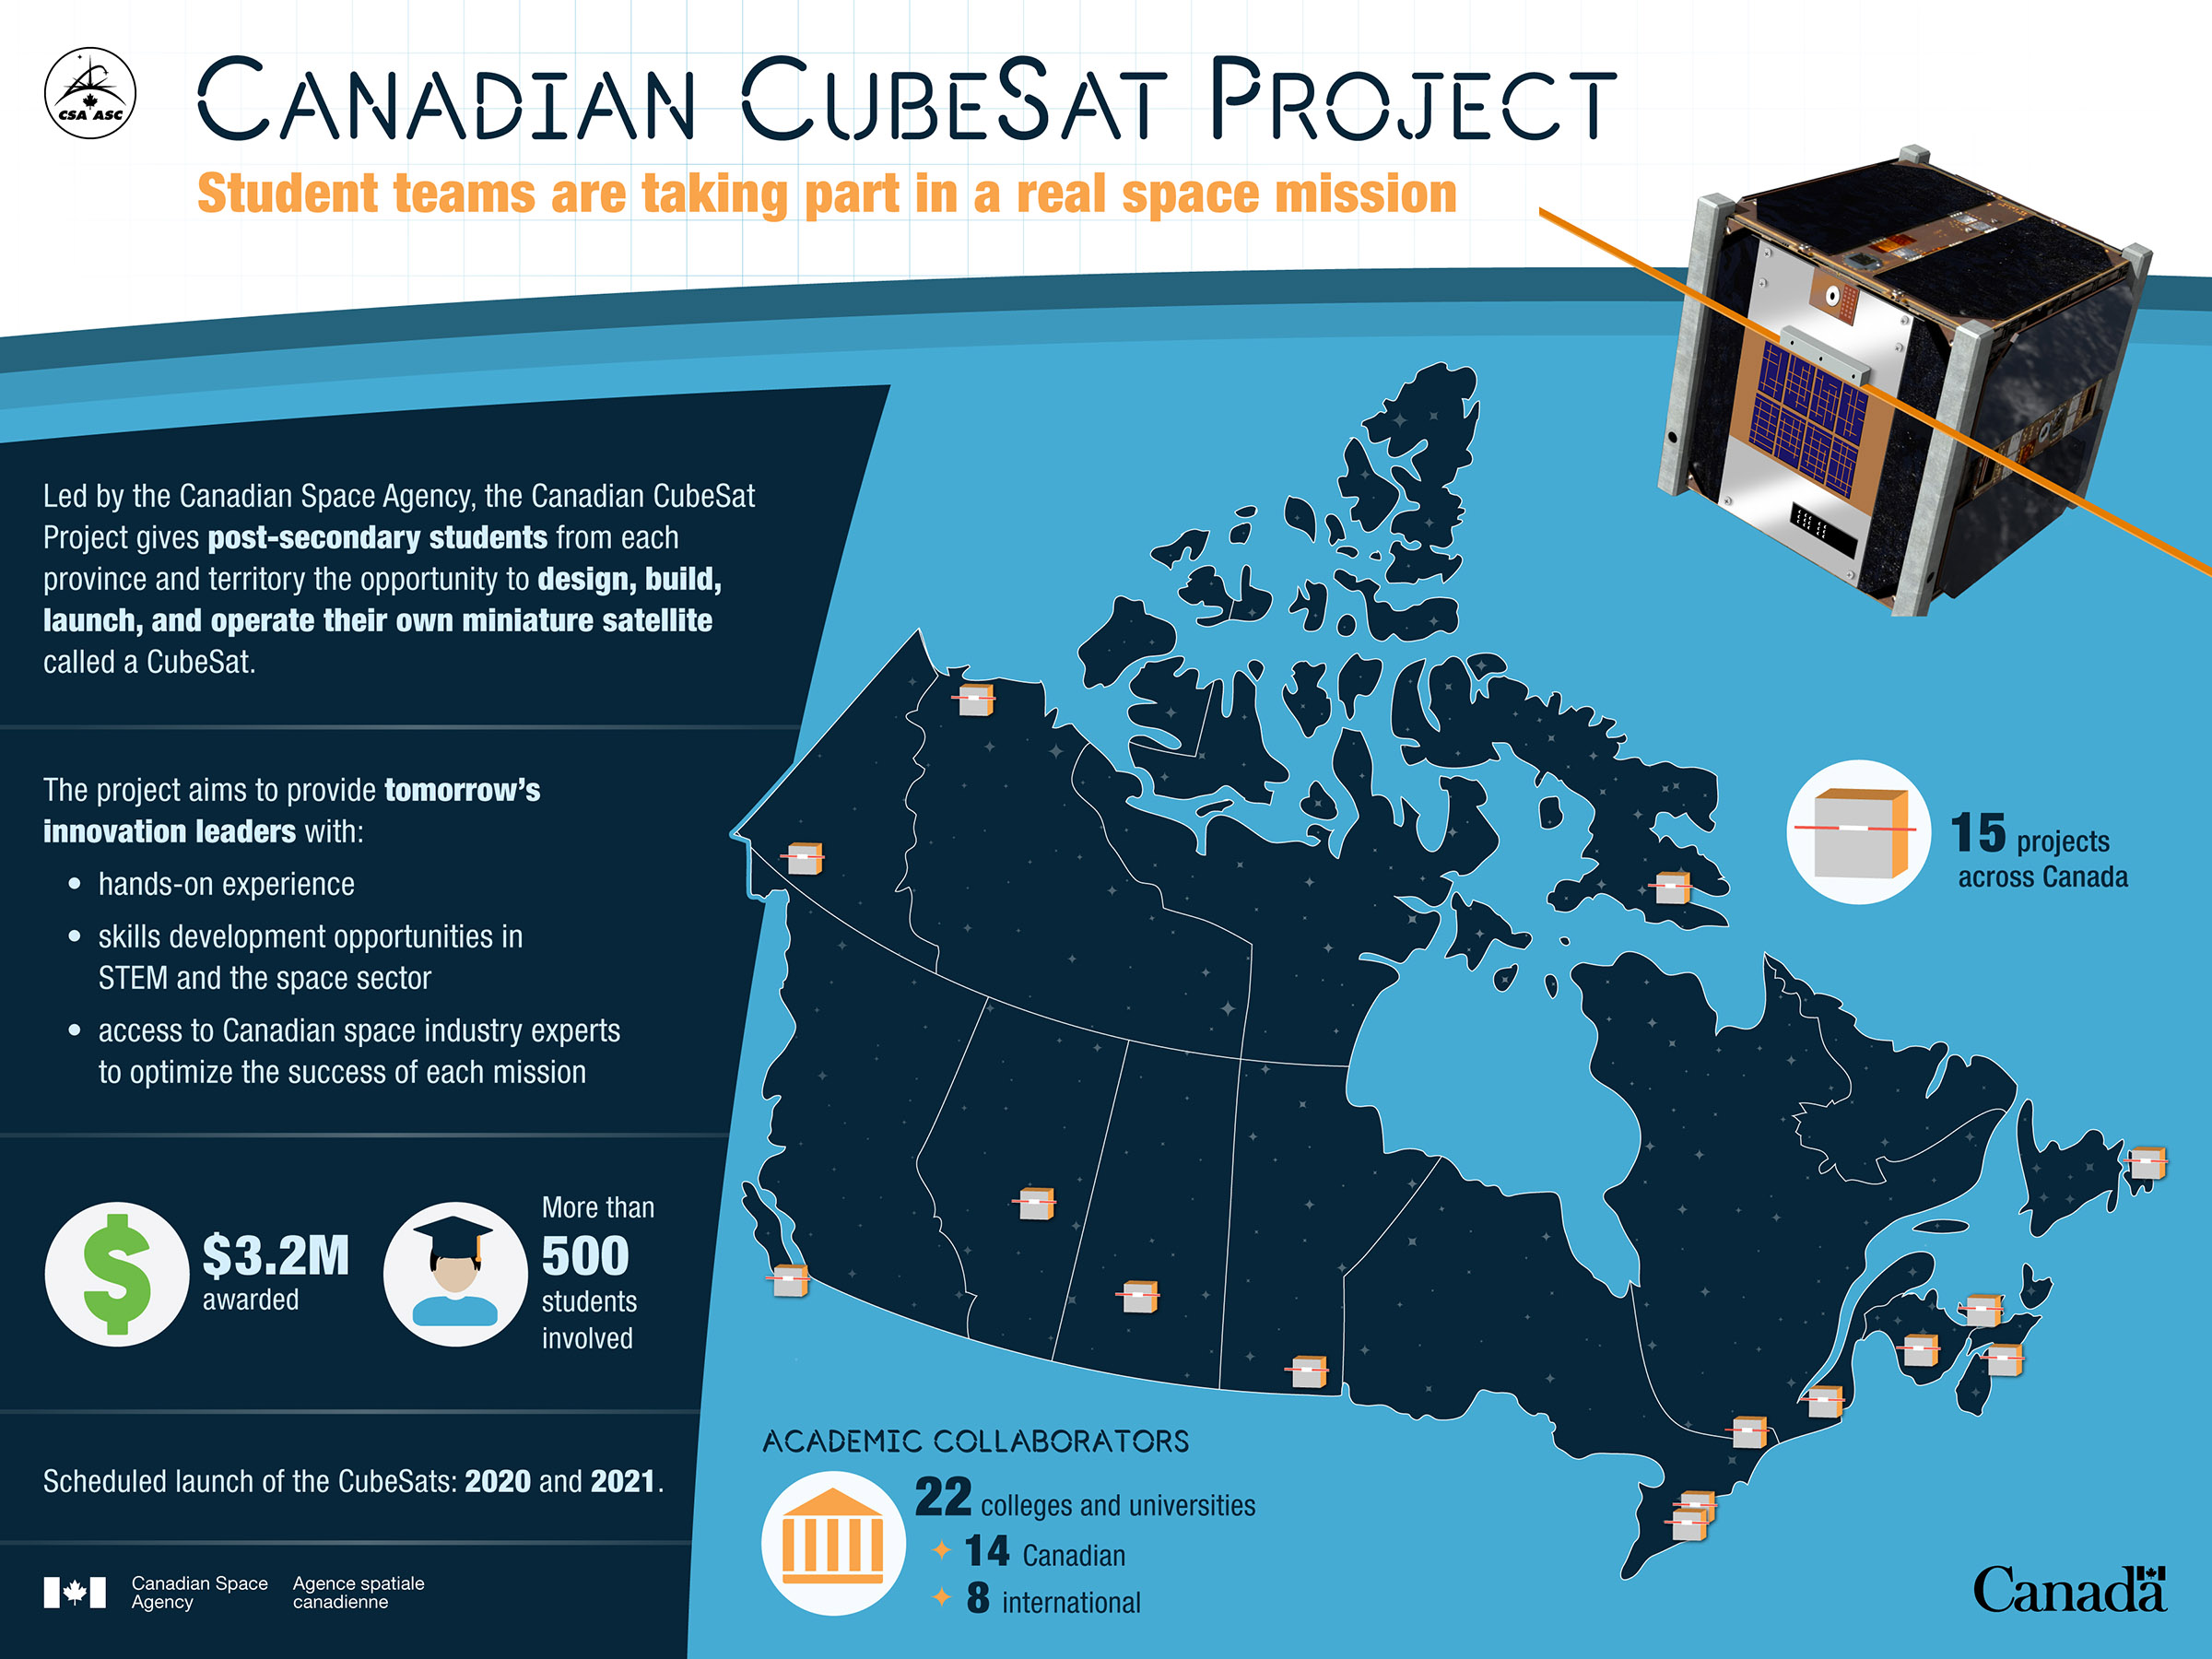 Canadian CubeSat Project at a glance.